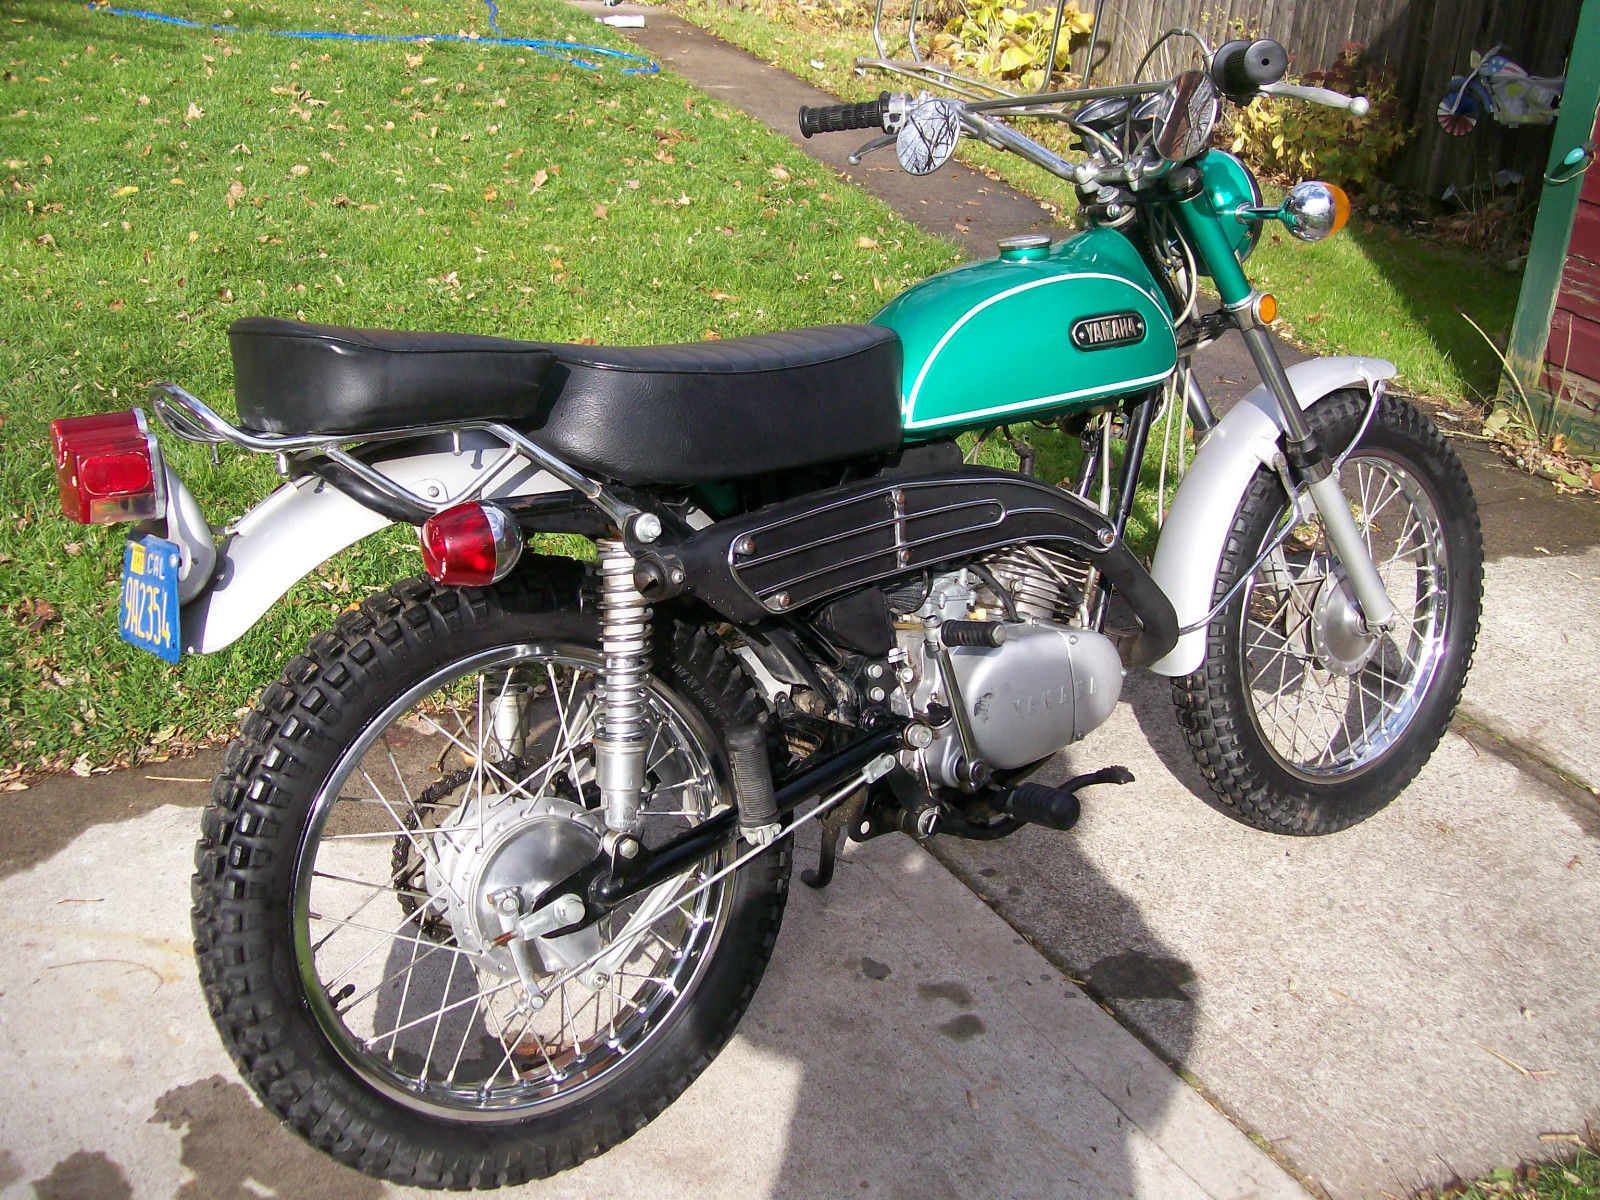 1970 yamaha ct1b 175 enduro 851 original miles. Black Bedroom Furniture Sets. Home Design Ideas